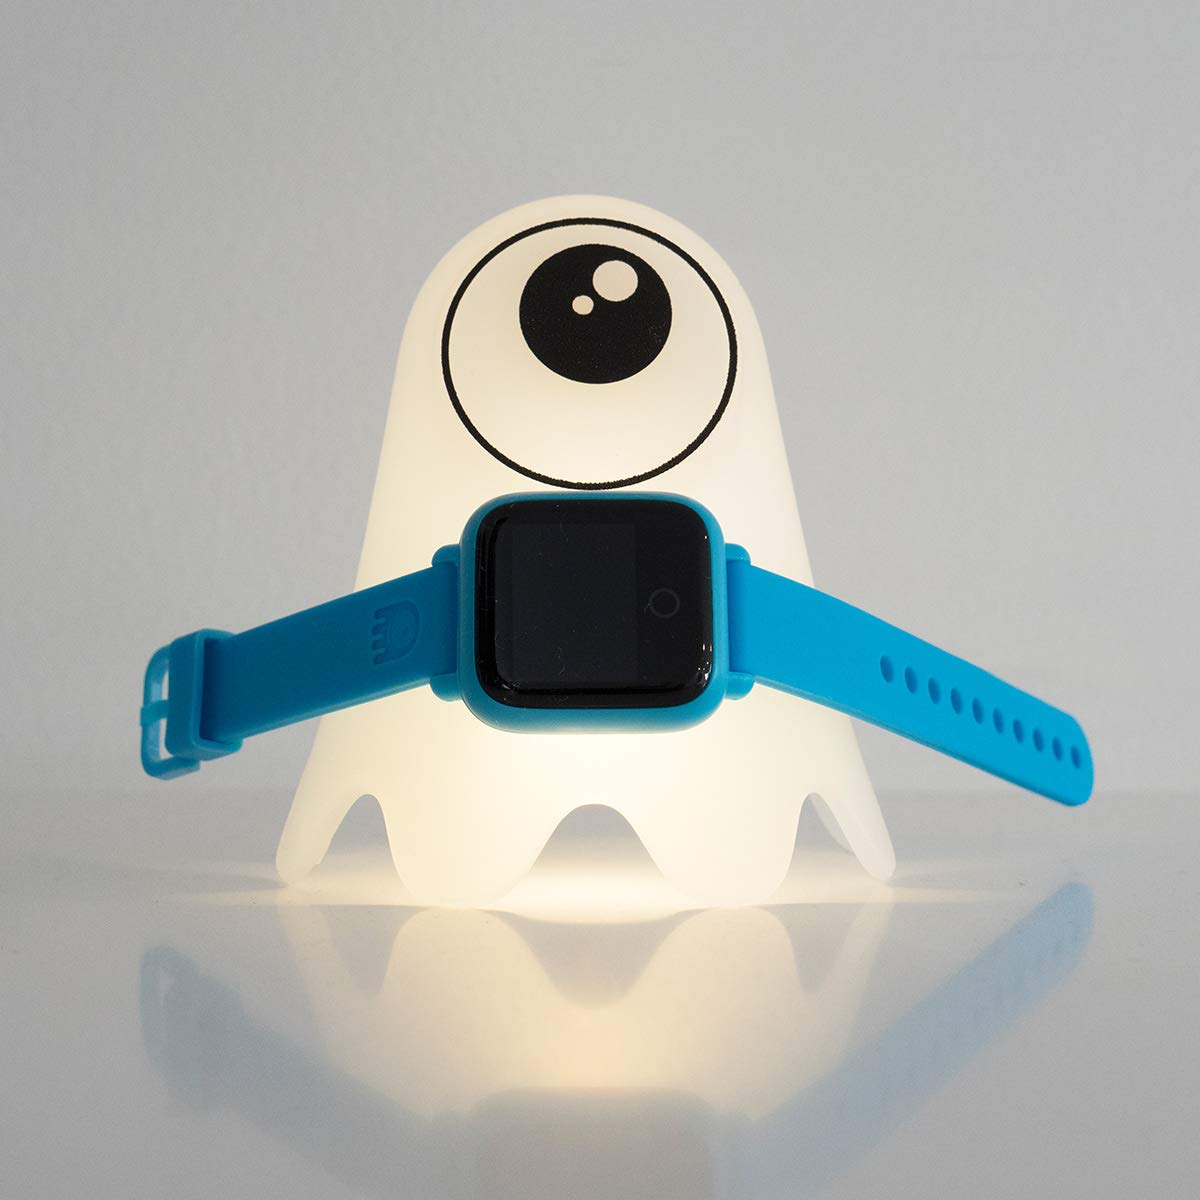 New! Octopus Watch v2 Motion Edition Teaches Kids Good Habits & Time - Encourages Active Play - The First Icon-Based Kids Smartwatch and Fitness Tracker (Blue) by Octopus by JOY (Image #8)